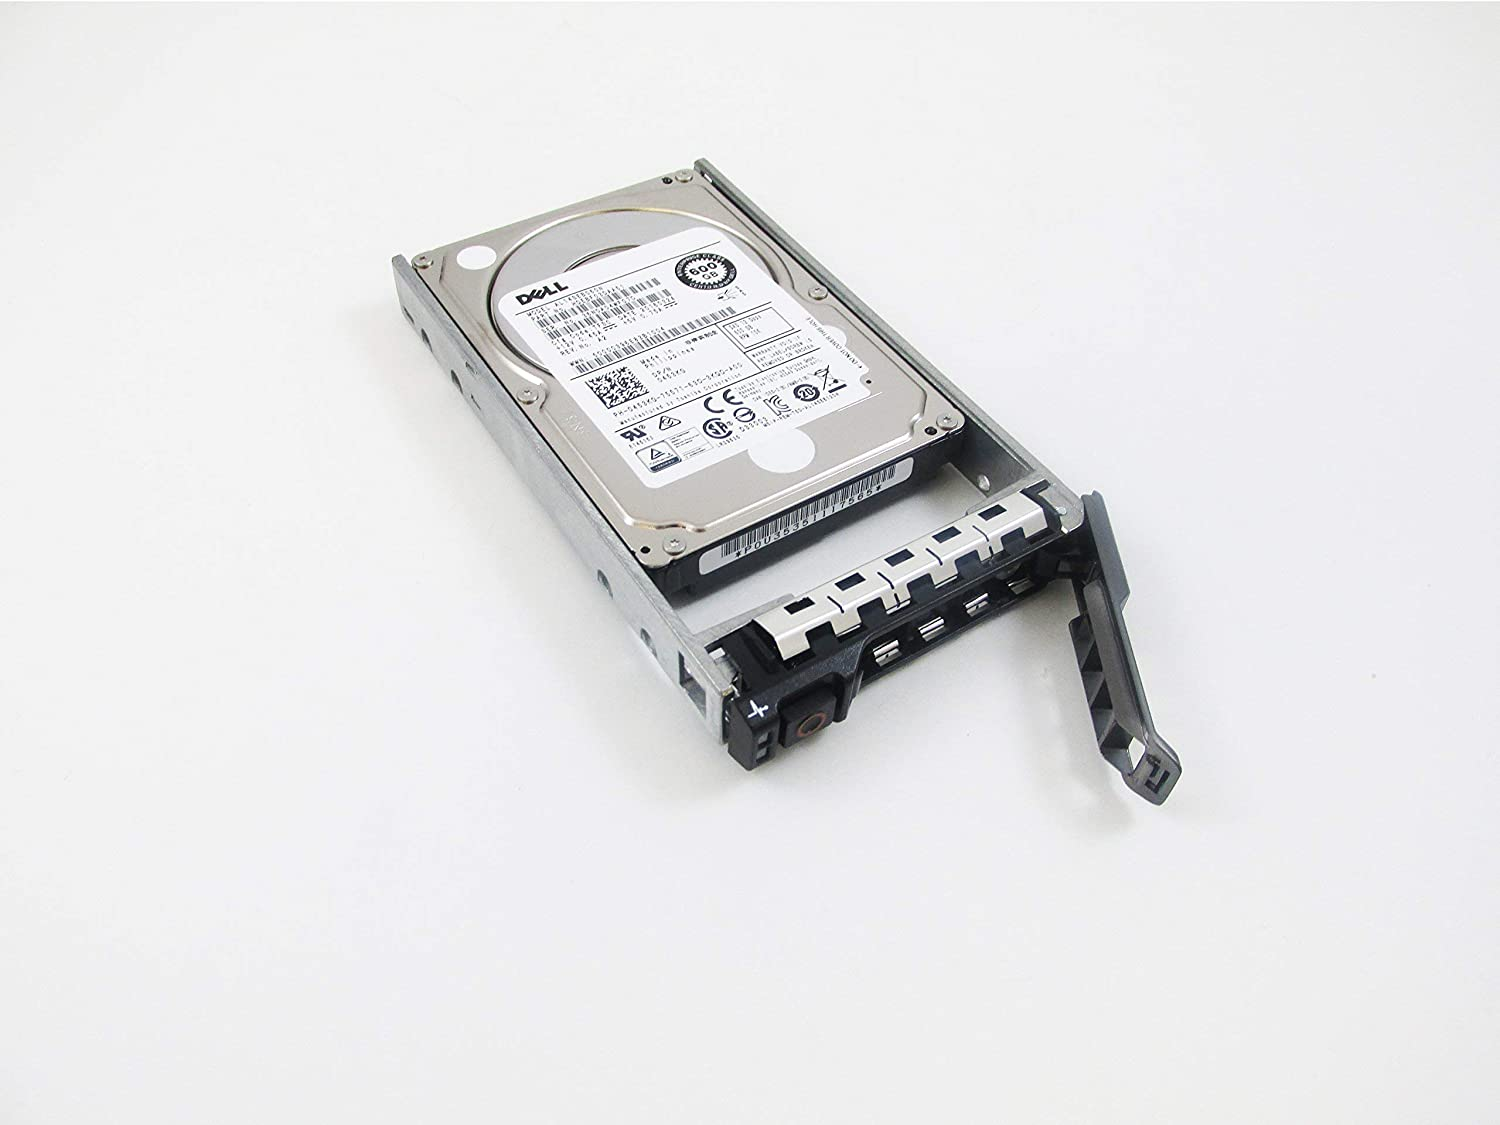 Dell 600GB 10K RPM SAS 2.5inch HDD - Mfg # 05R6CX (Comes with Drive and Tray) (Renewed)